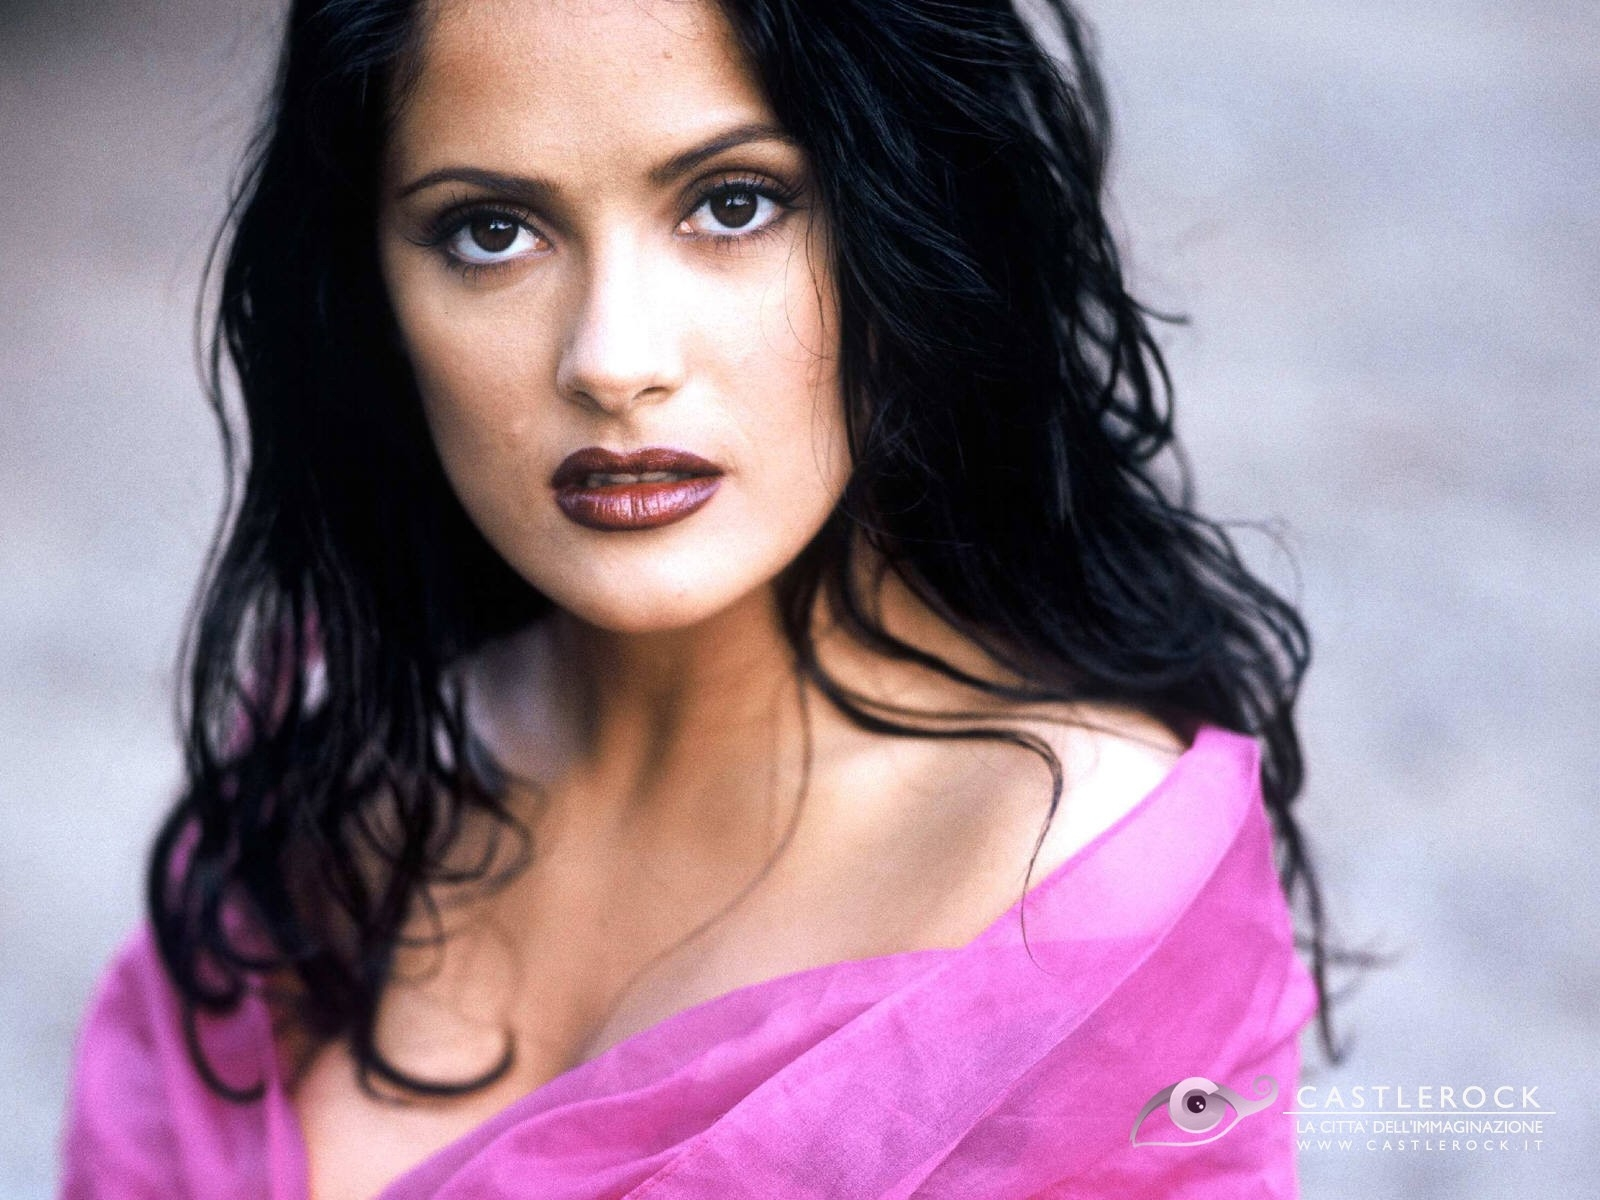 Wallpaper di Salma Hayek in abito rosa